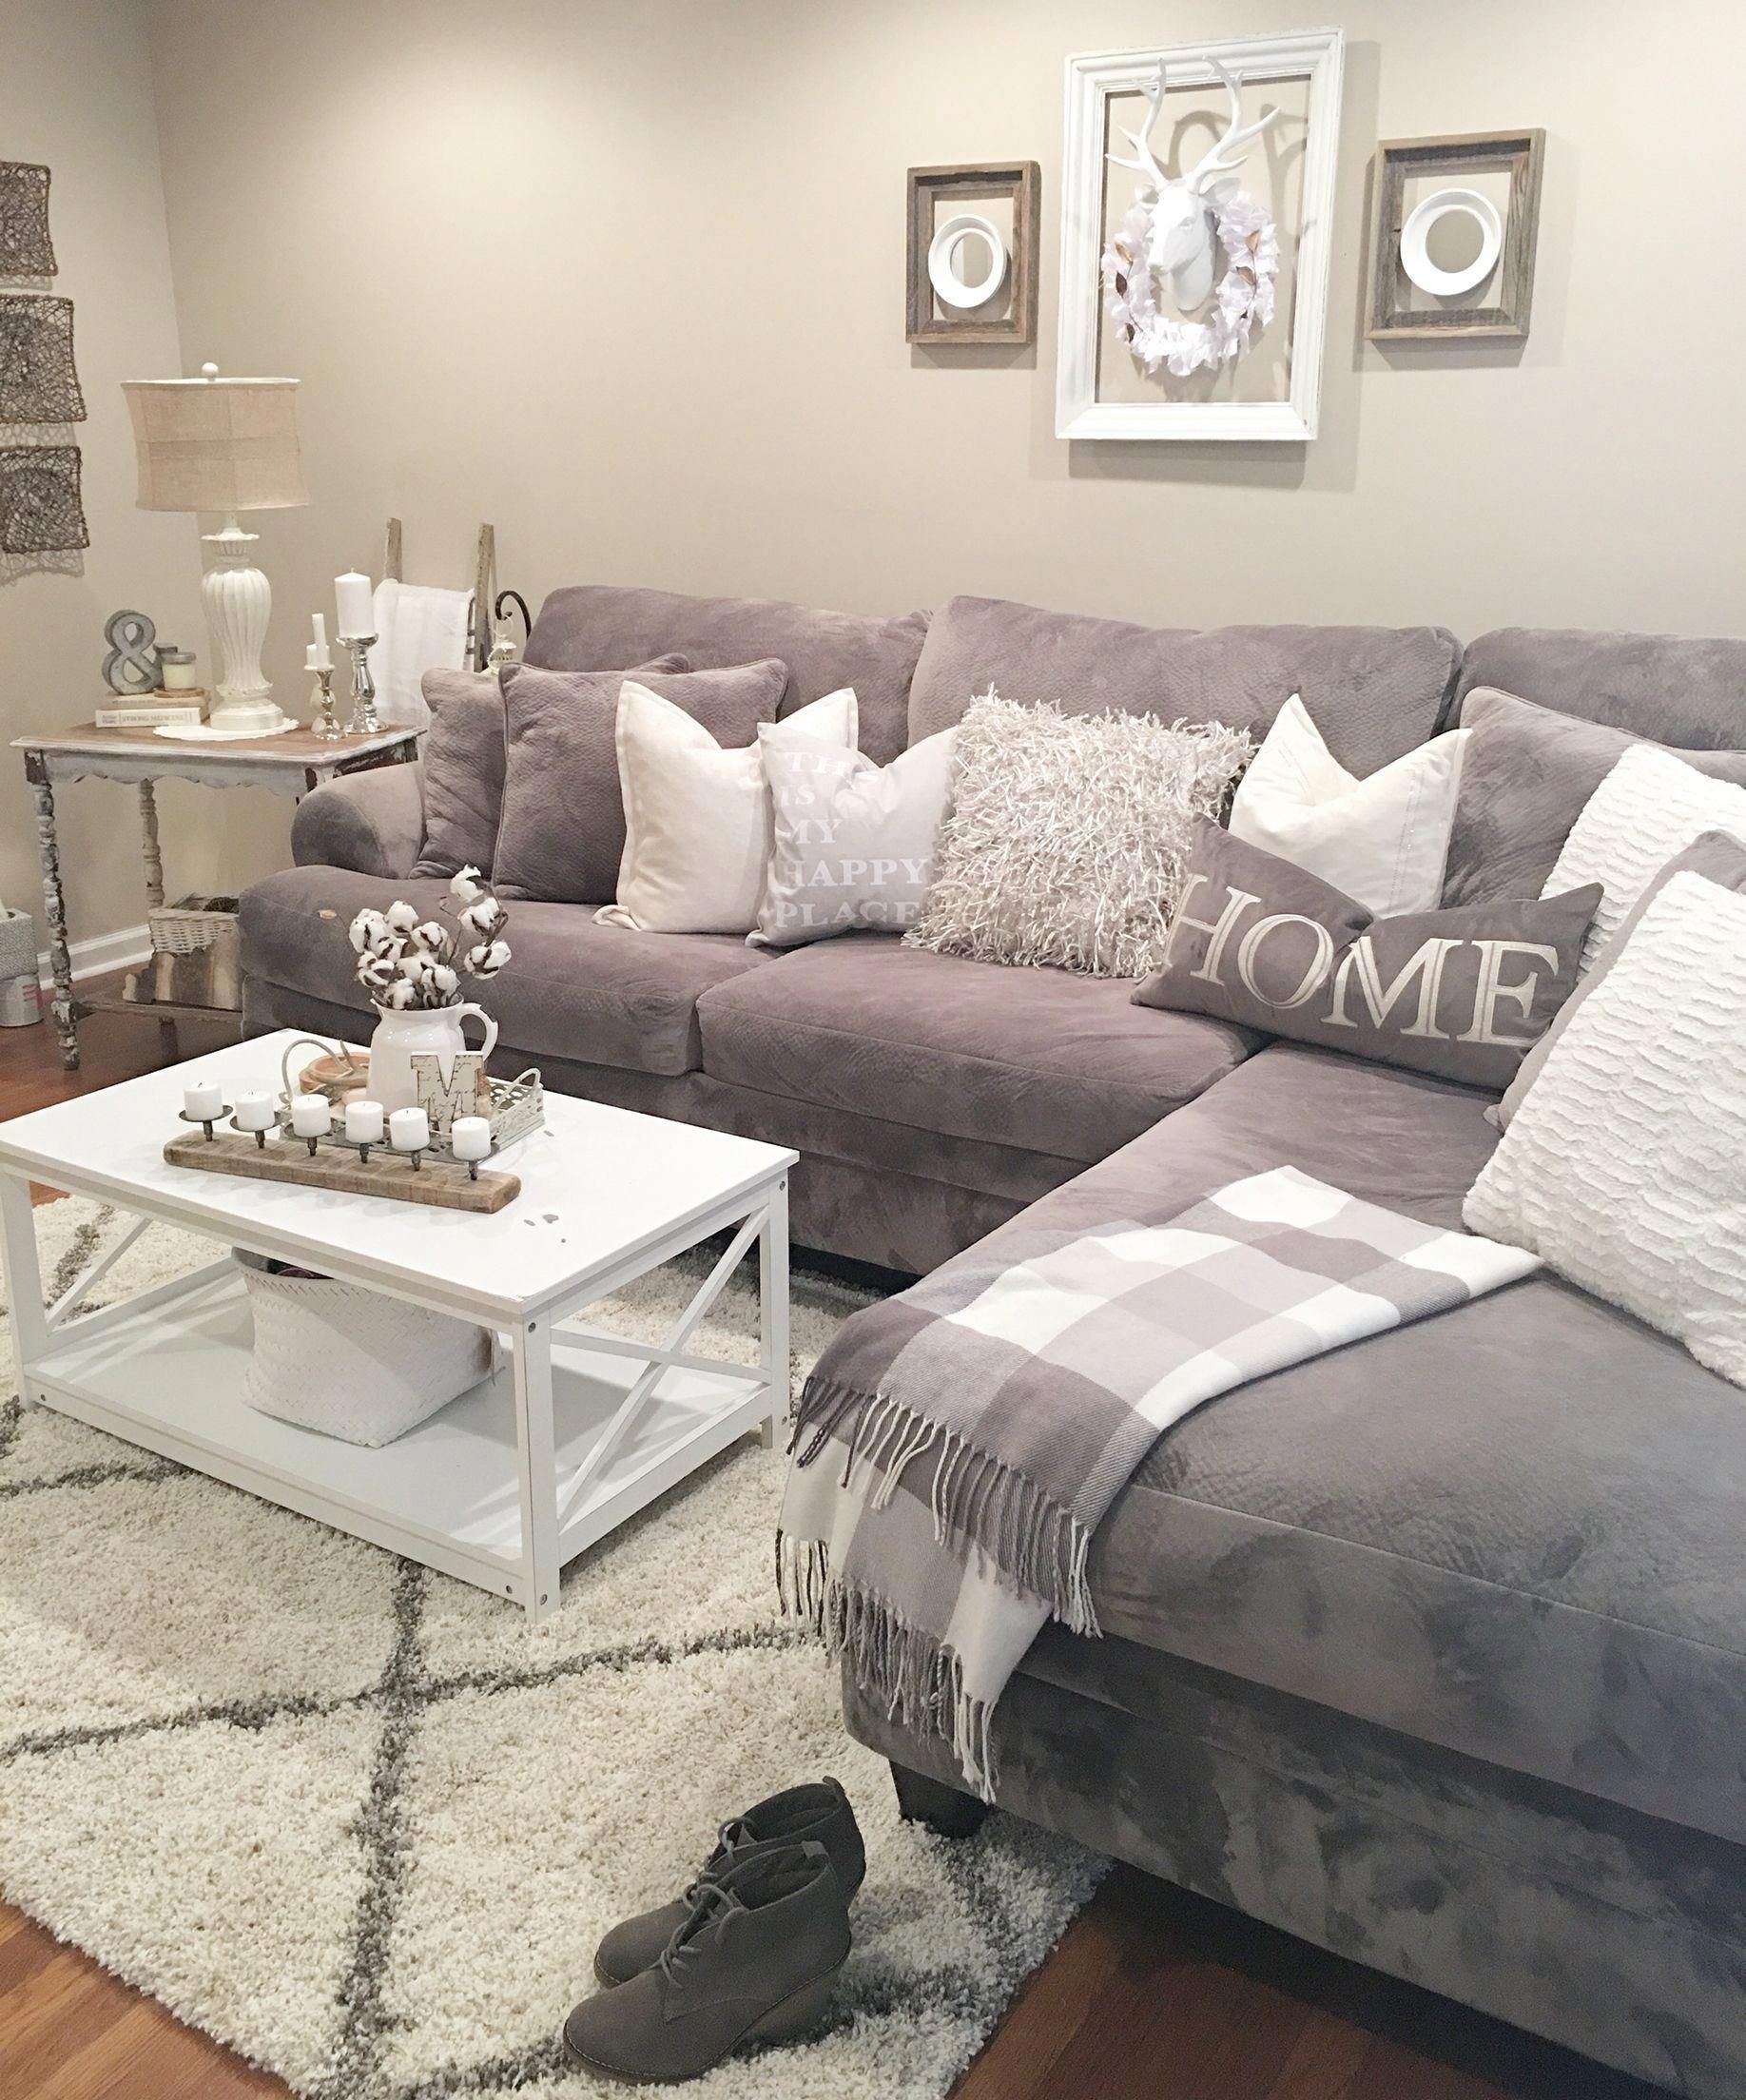 Home Decor Ideas To Make The Most Of Your Space Primark Home